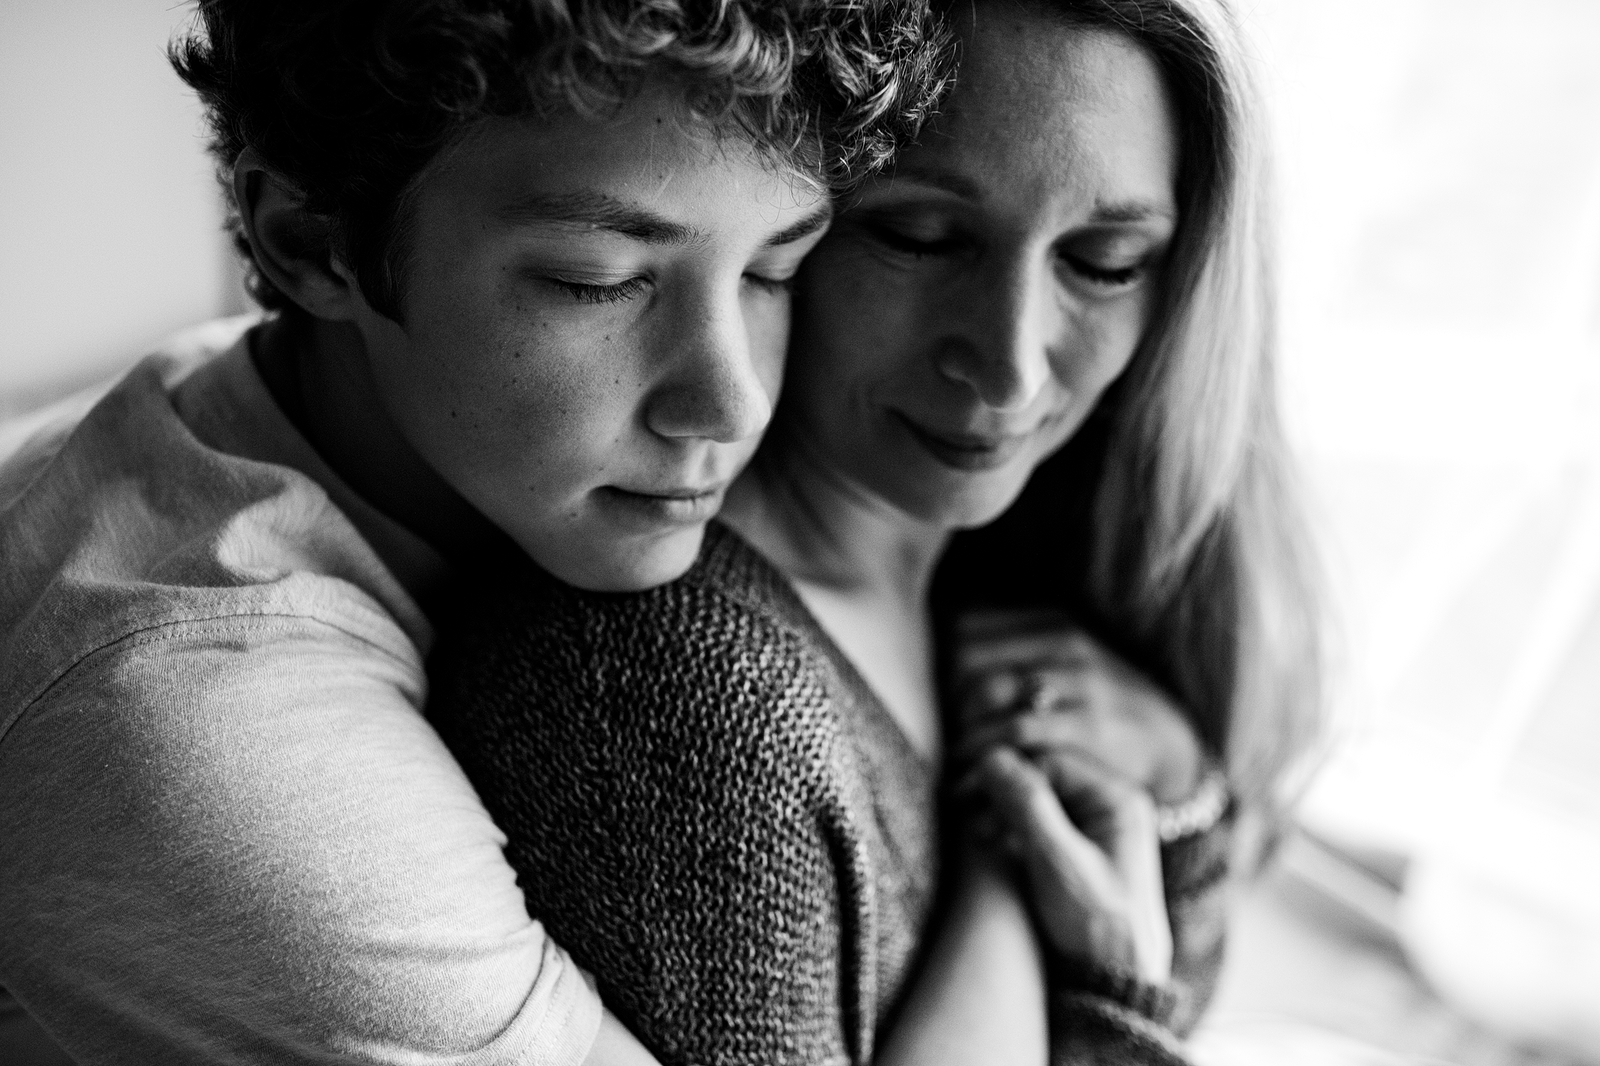 family photographer, columbus, ga, atlanta, wander years, teen son hugging mom, ker-fox photography_0570